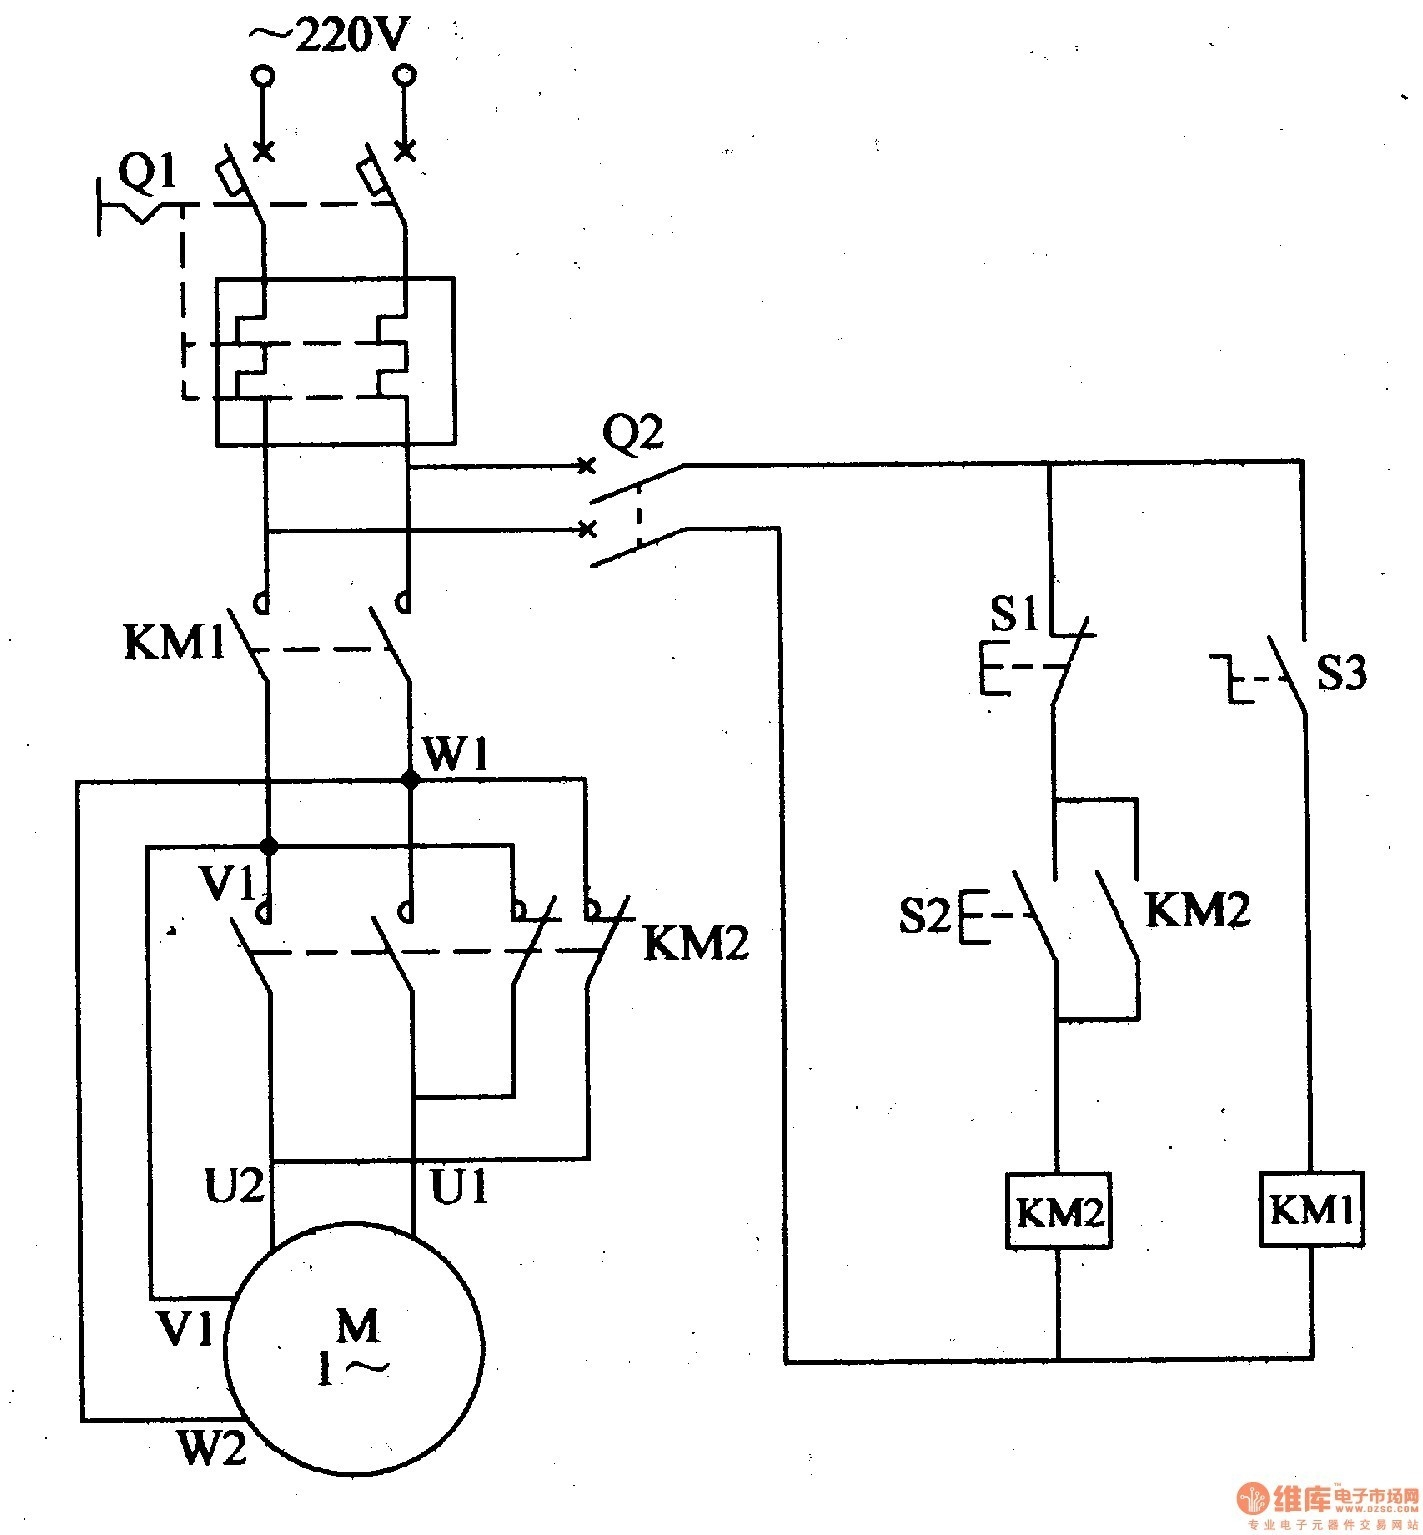 motor schematics file